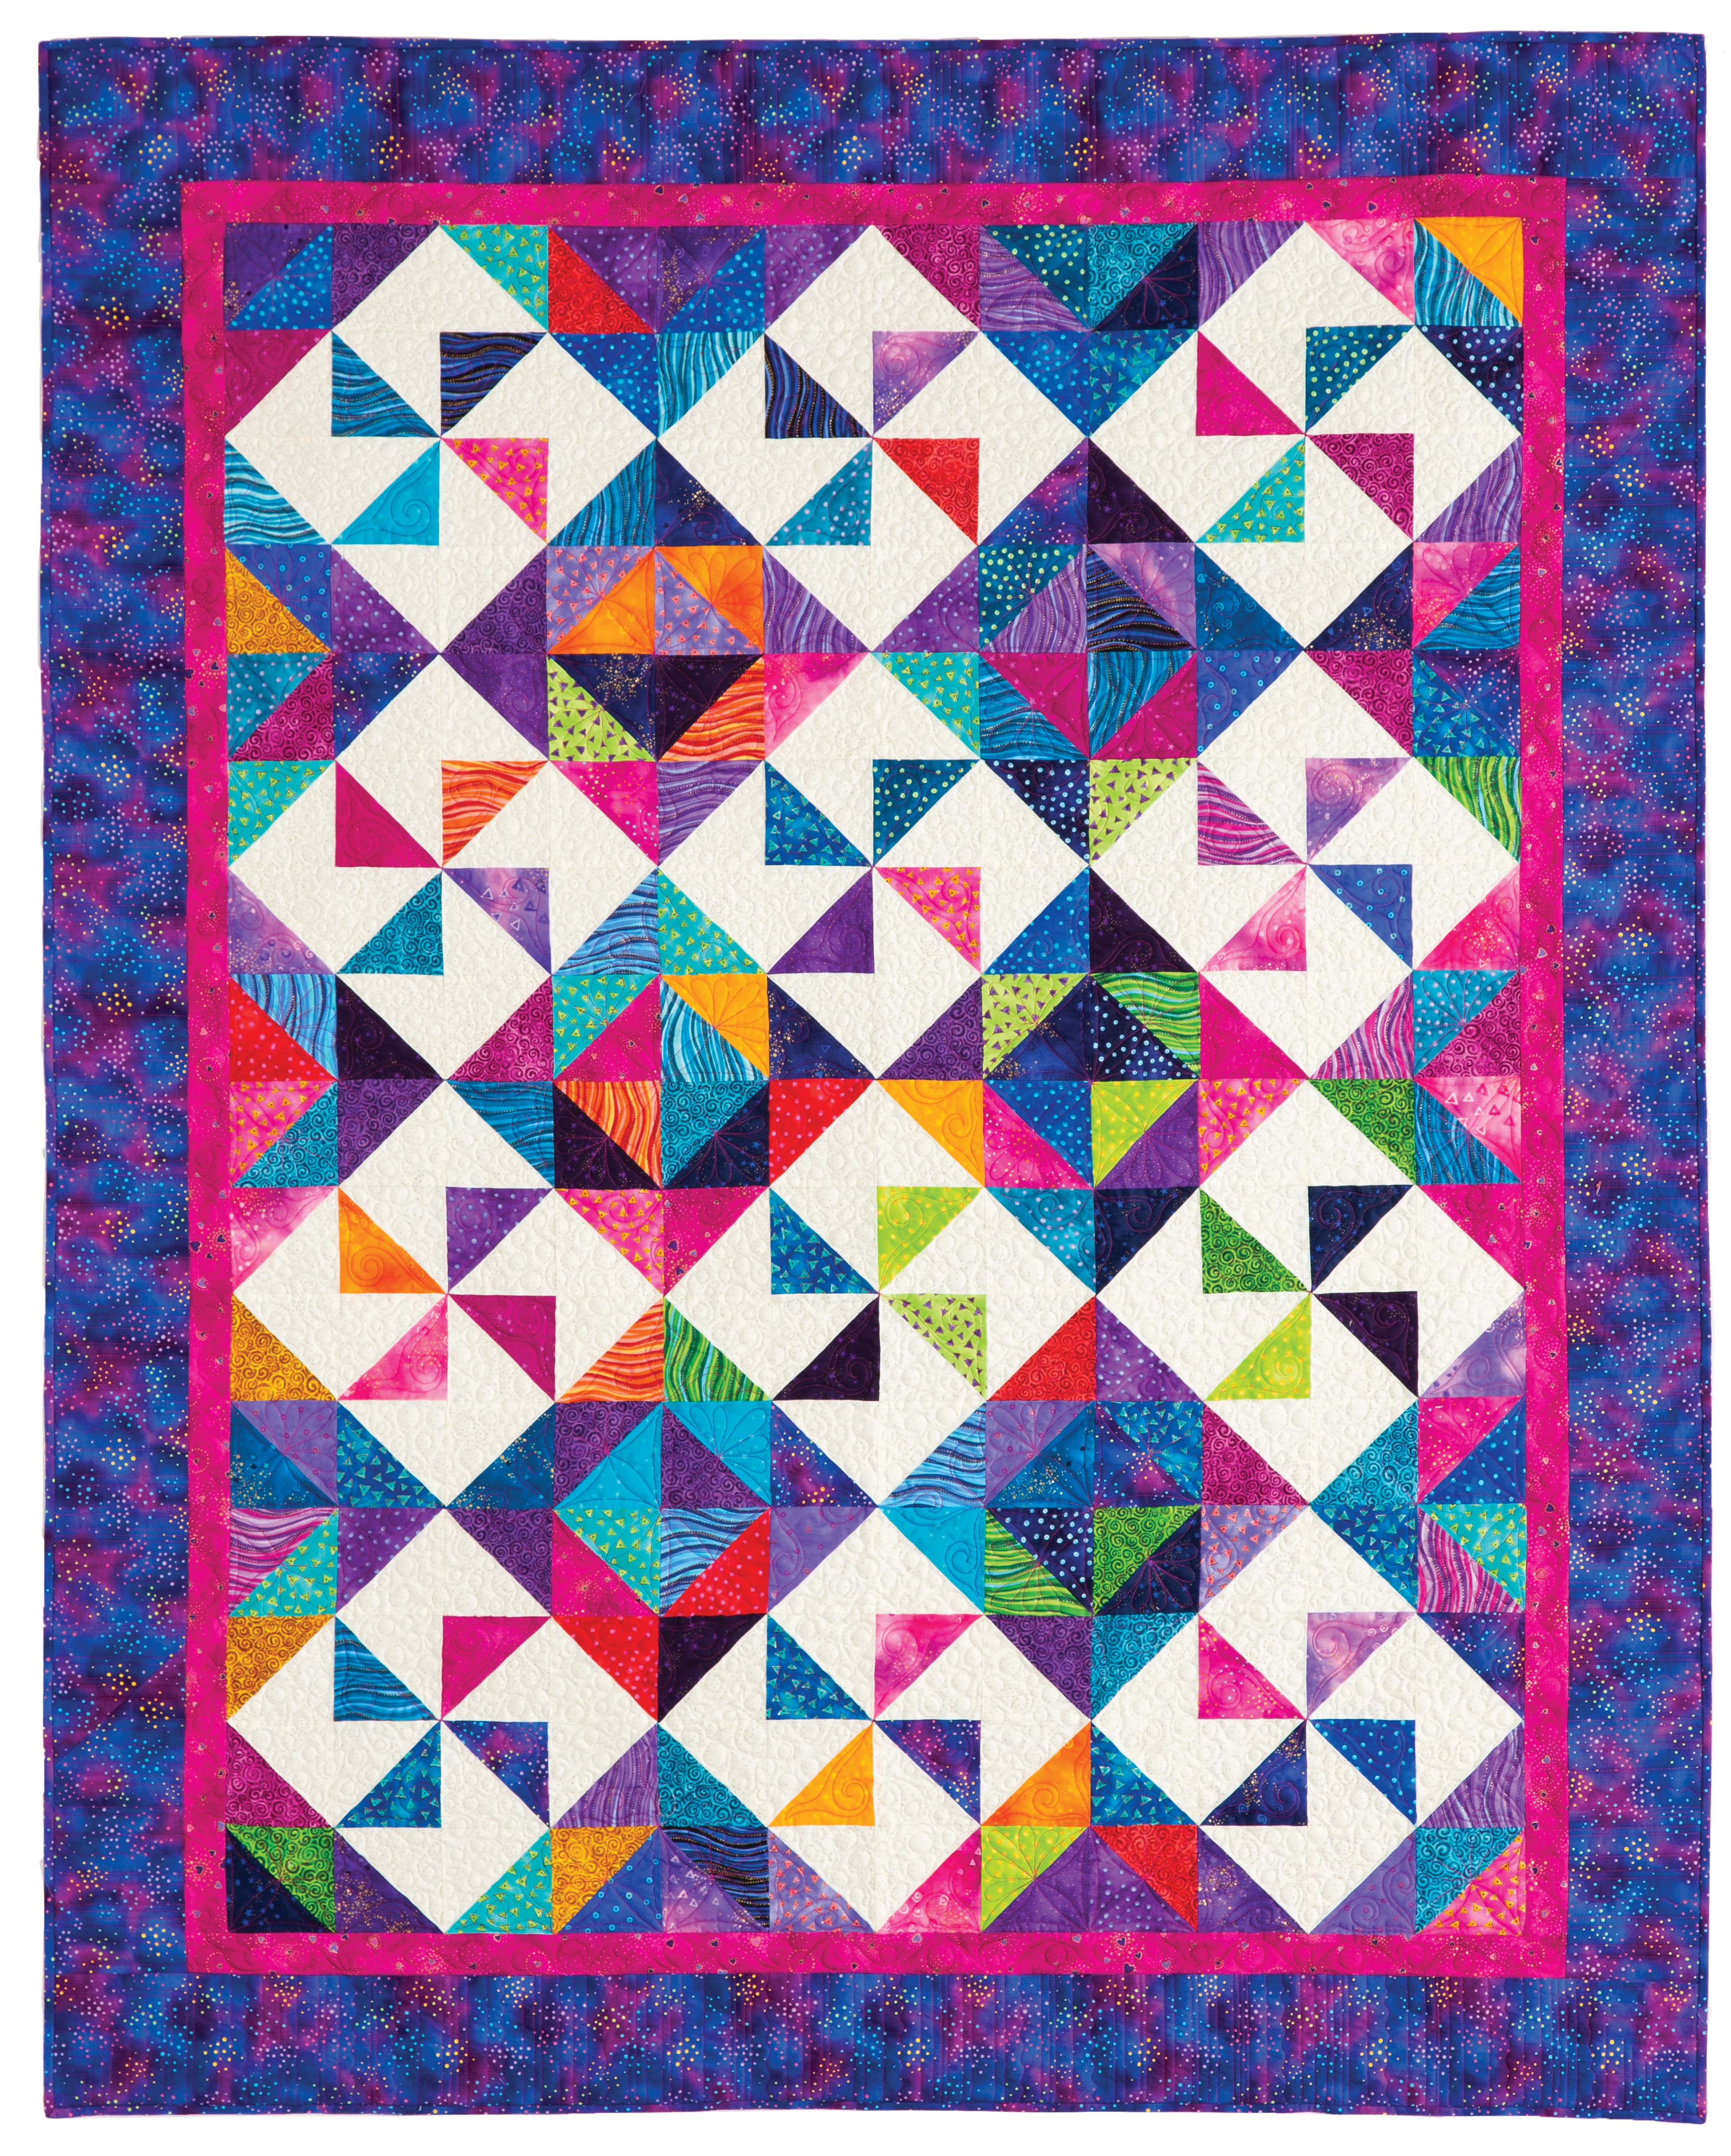 quilt-color-whirls-flat